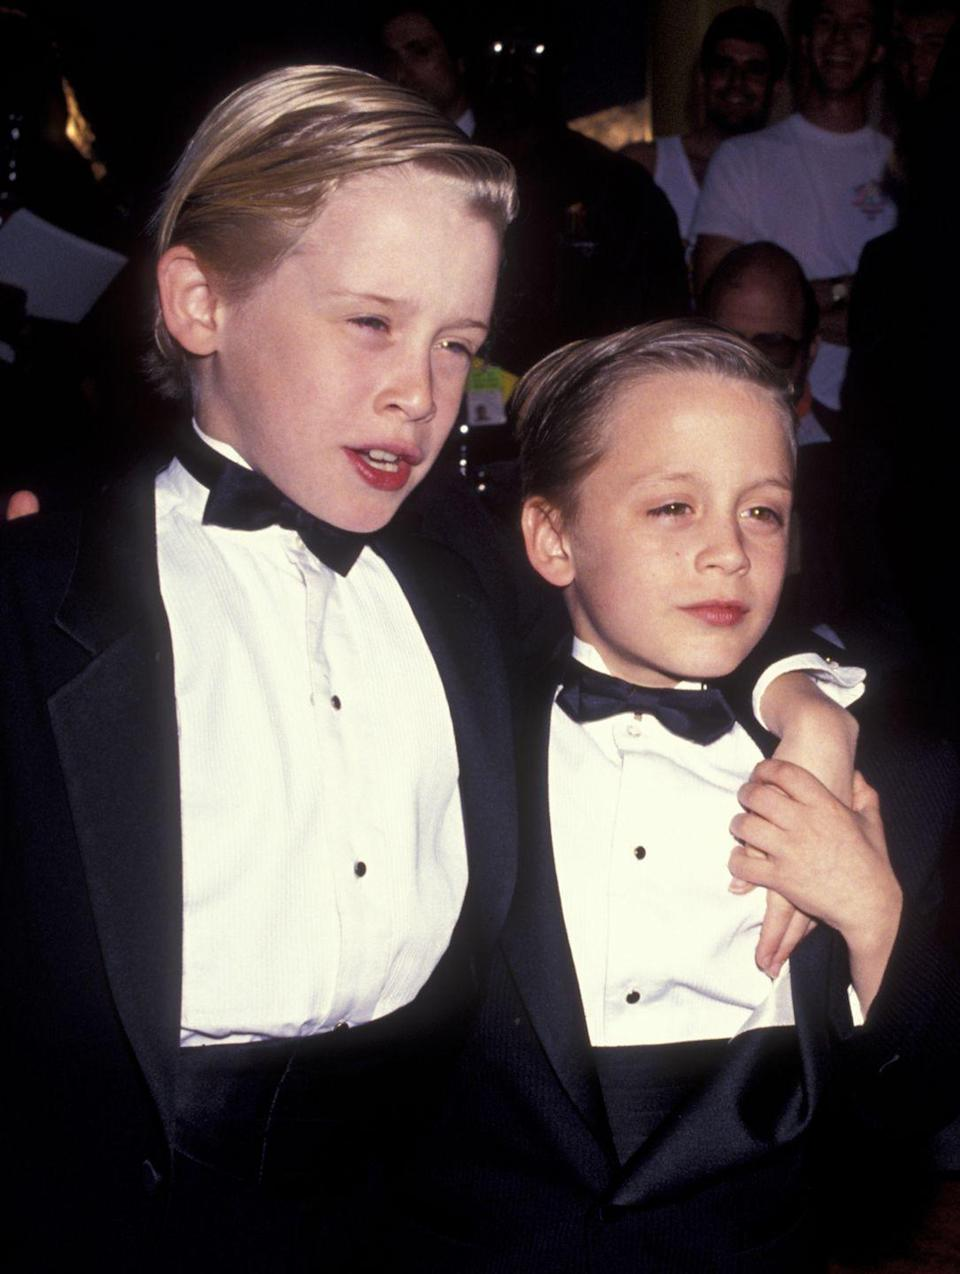 <p>Galella photographed a young Macaulay and Kieran Culkin in Los Angeles, attending the Fifth Annual American Comedy Awards in 1991.</p>